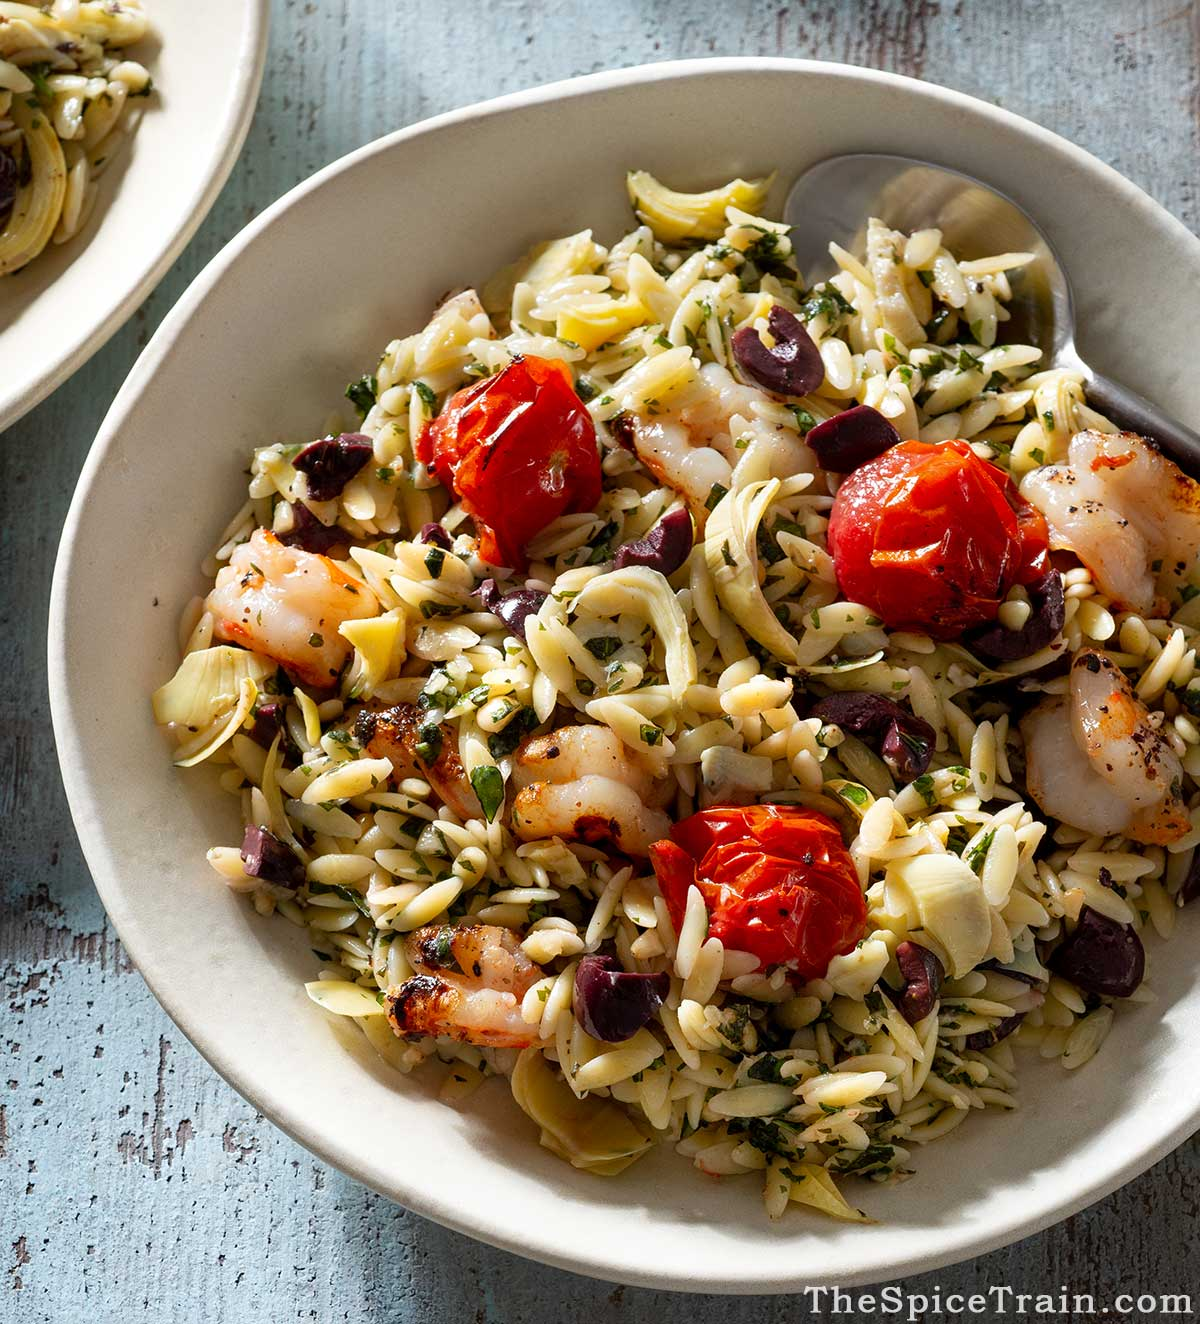 Shrimp orzo salad on a plate with a spoon.